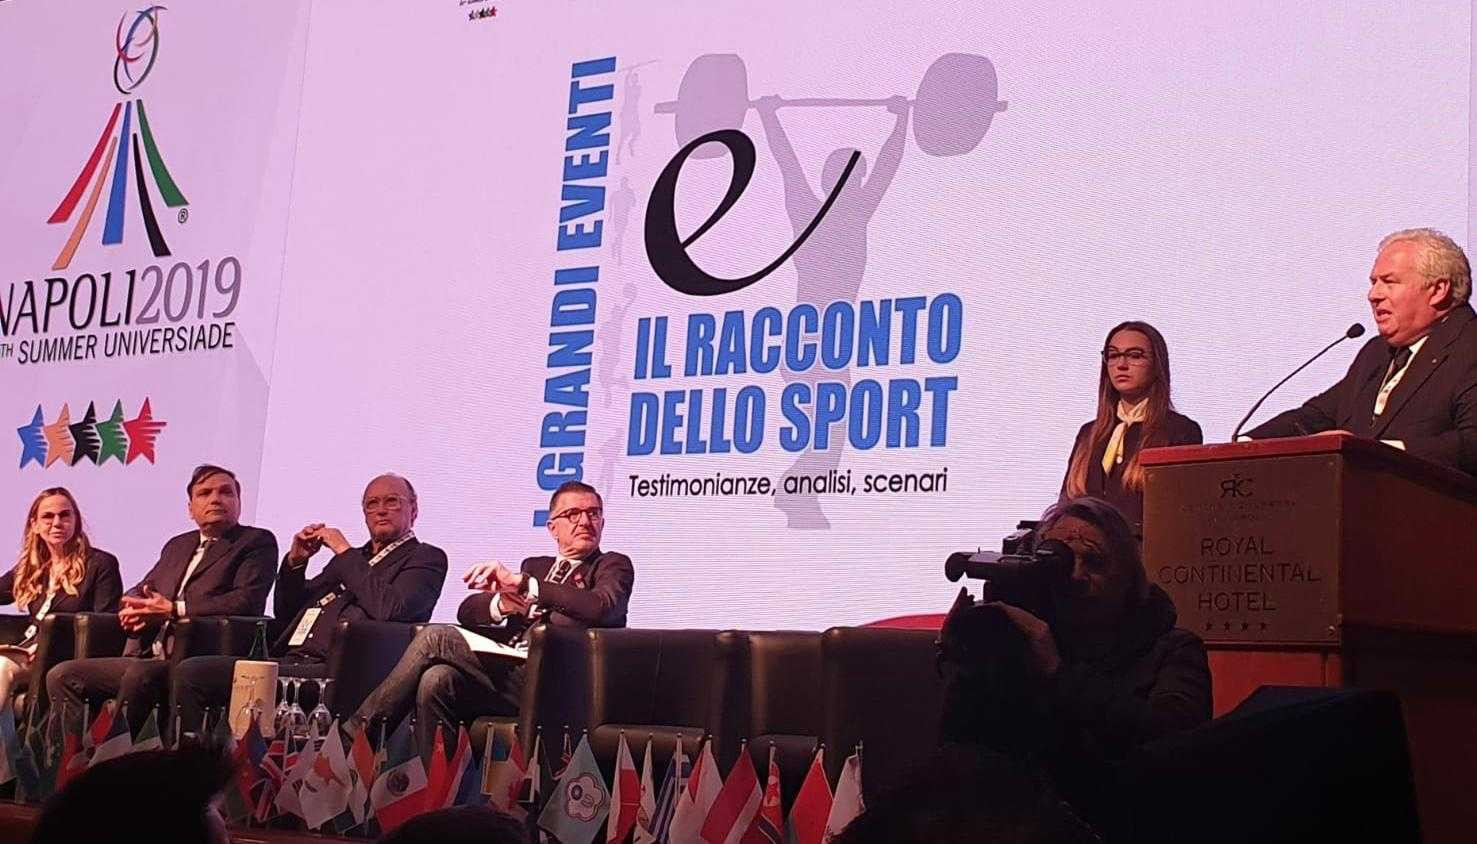 International Sports Press Association Europe holds 2019 Summer Universiade symposium in Naples